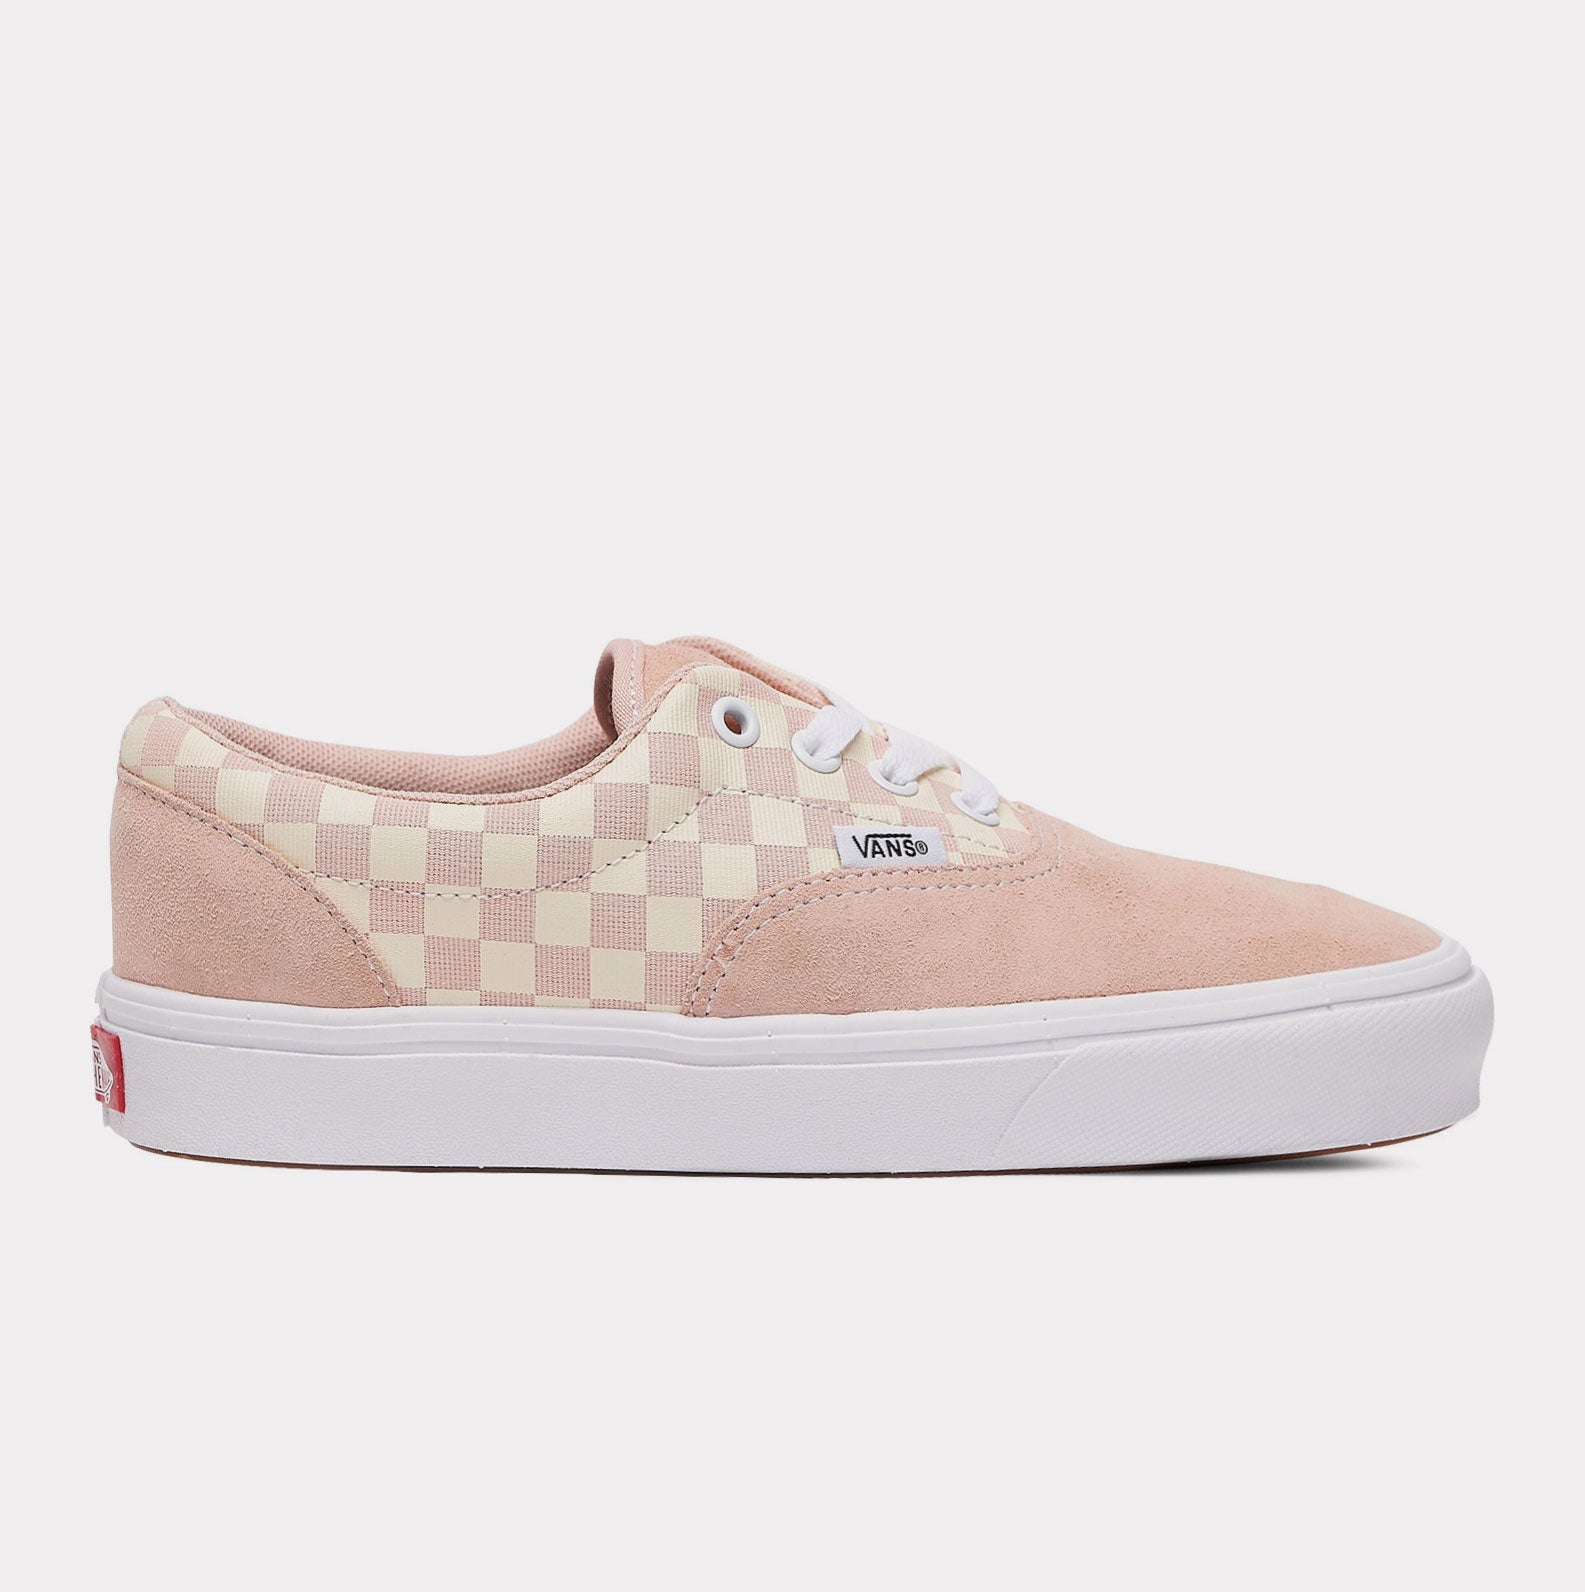 Vans Era Comfycush Checkerboard - Spanish/Vanilla